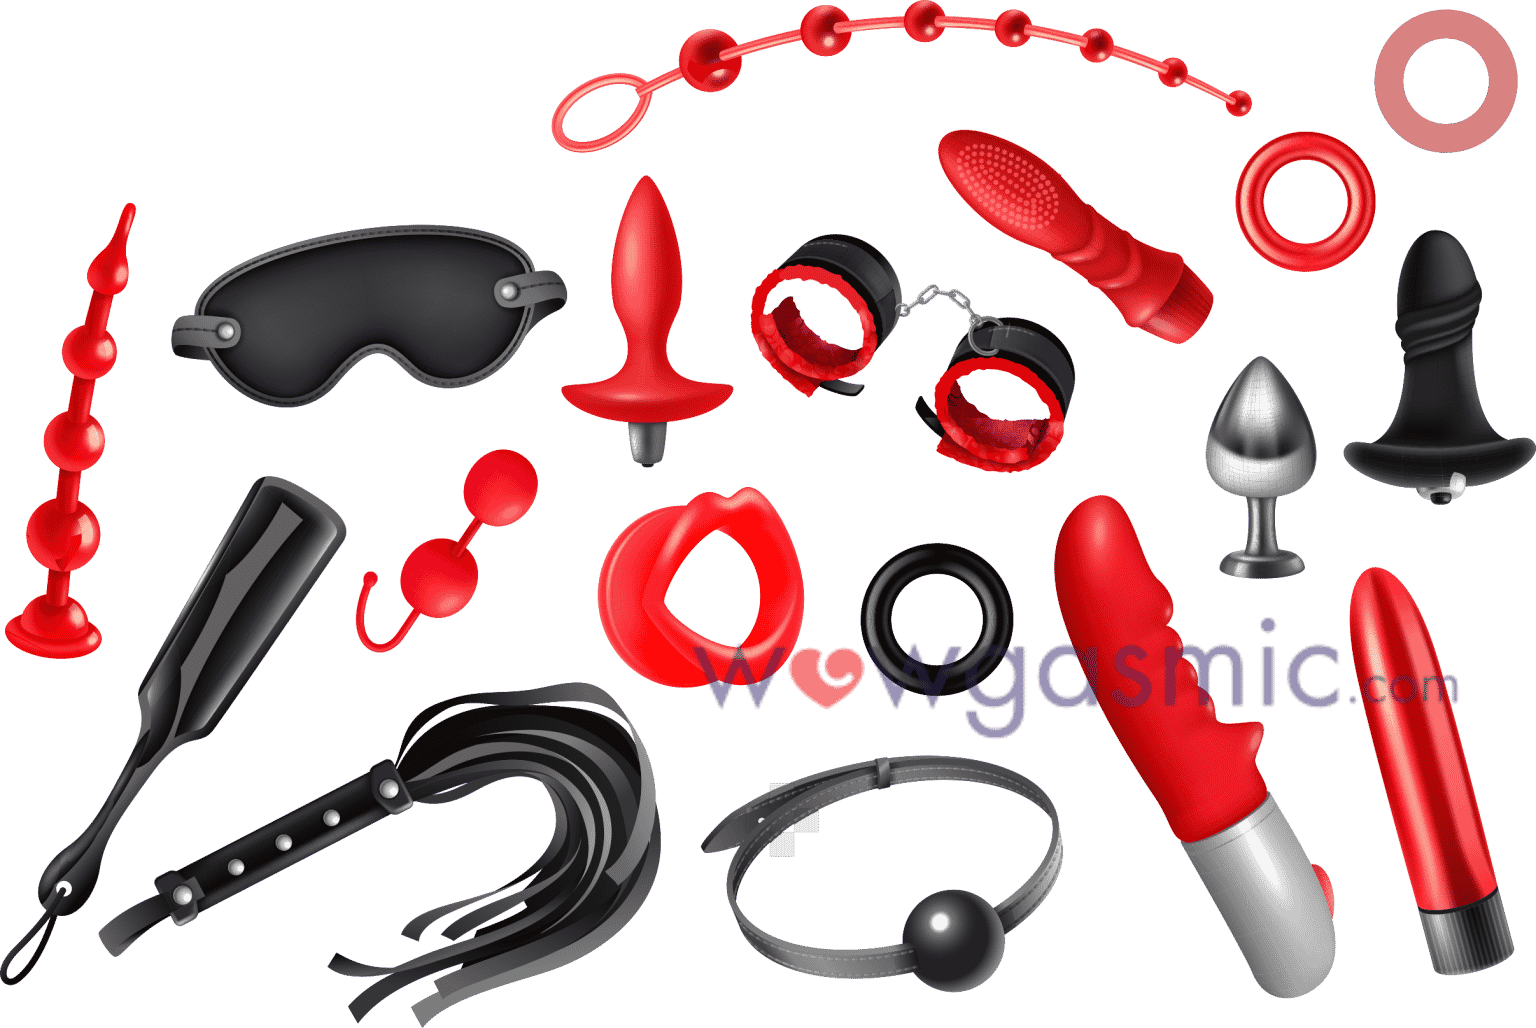 A vector image of various sex toys - wowgasmic sex toys in Kenya for sale